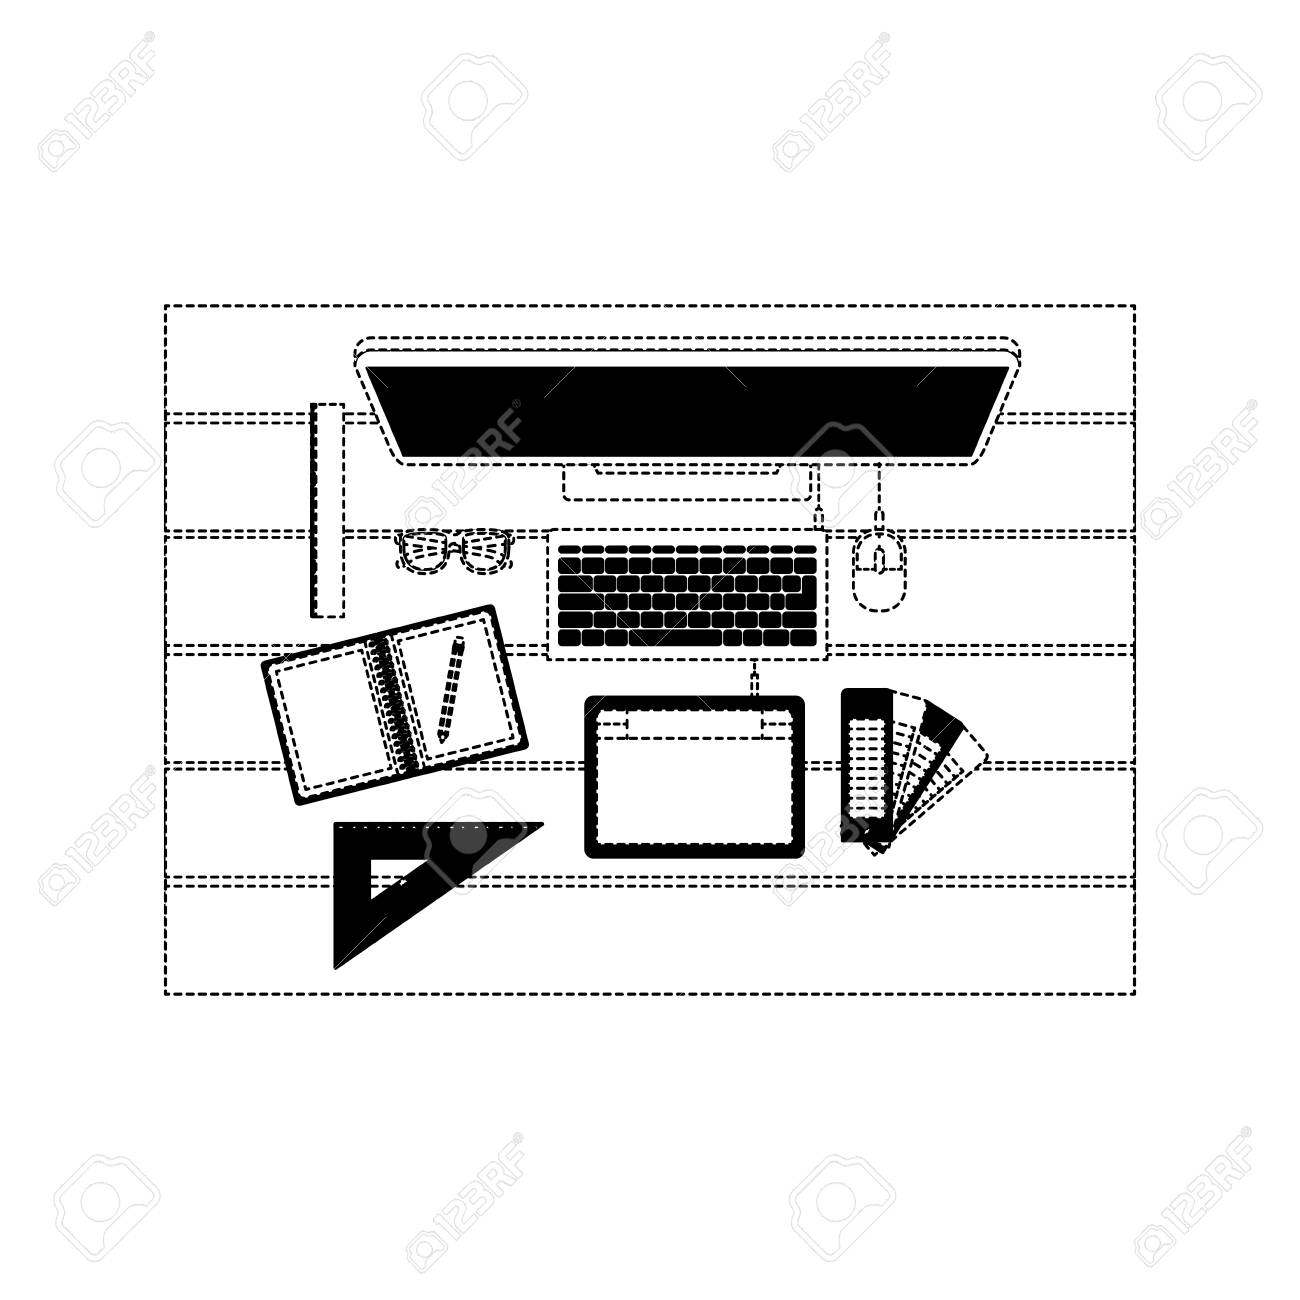 Free Office Desk Clipart Black And White, Download Free Clip Art, Free Clip  Art on Clipart Library